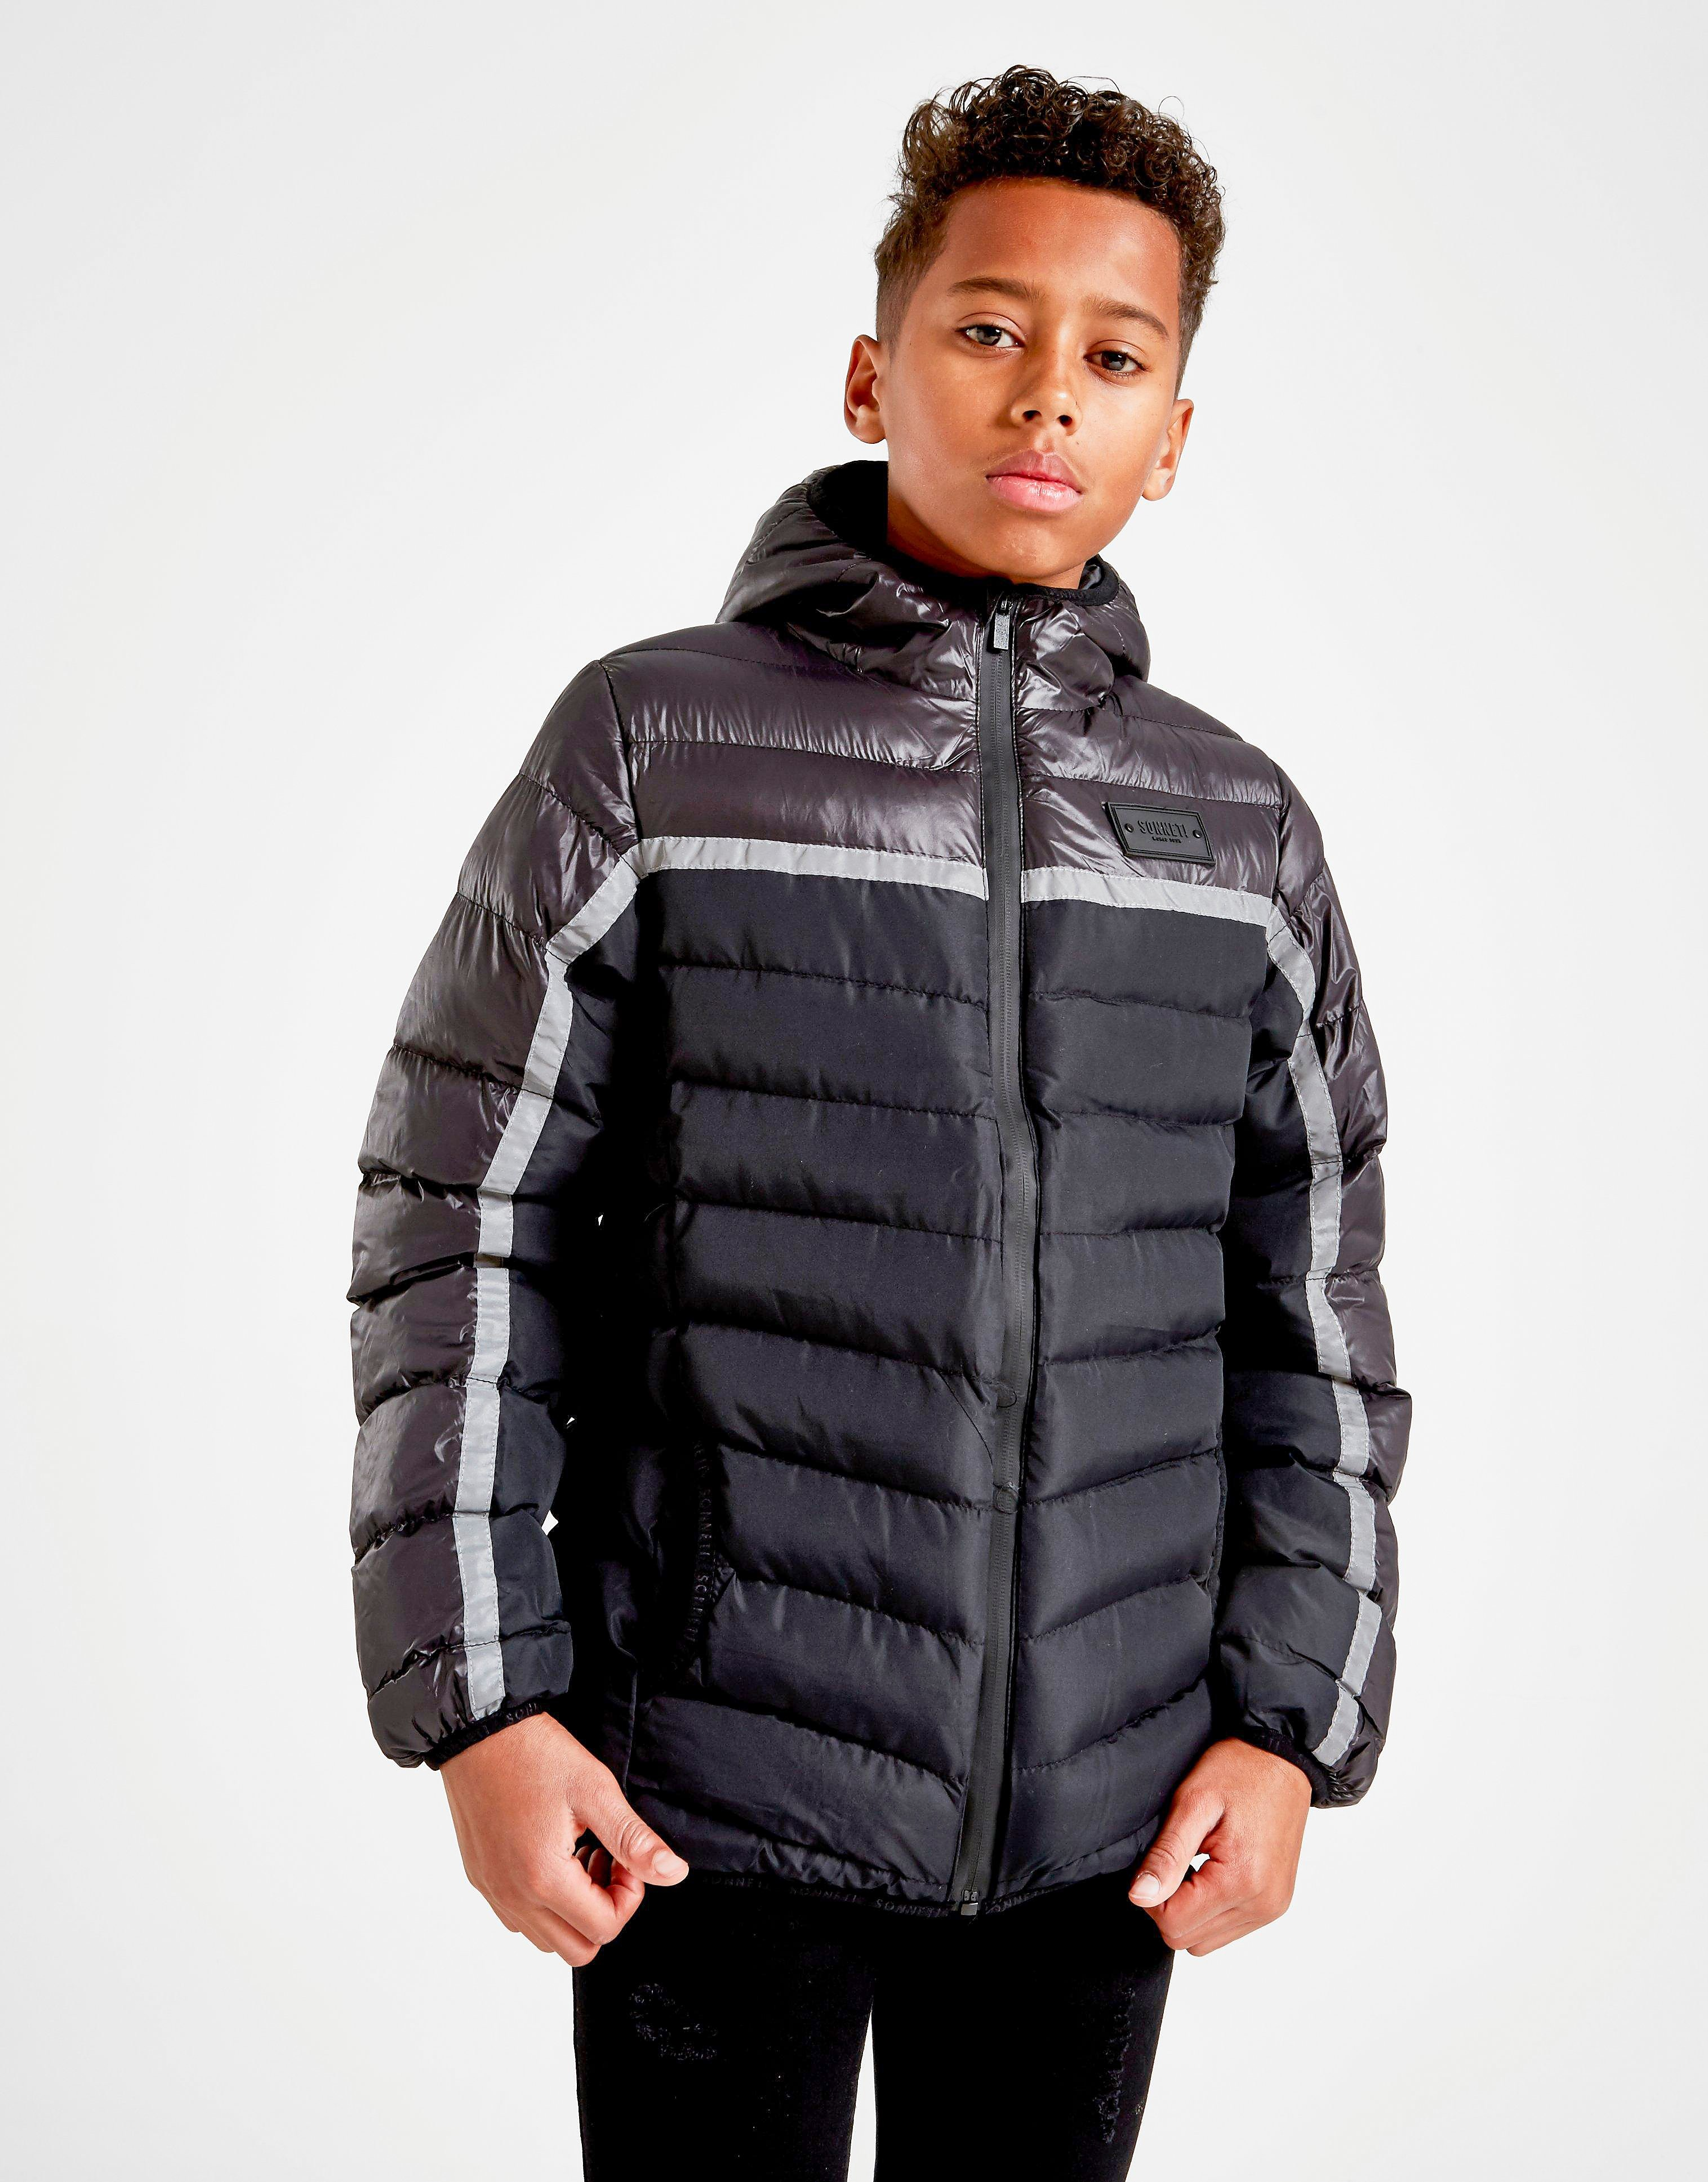 Sonneti Zane Jacket Junior - Zwart - Kind